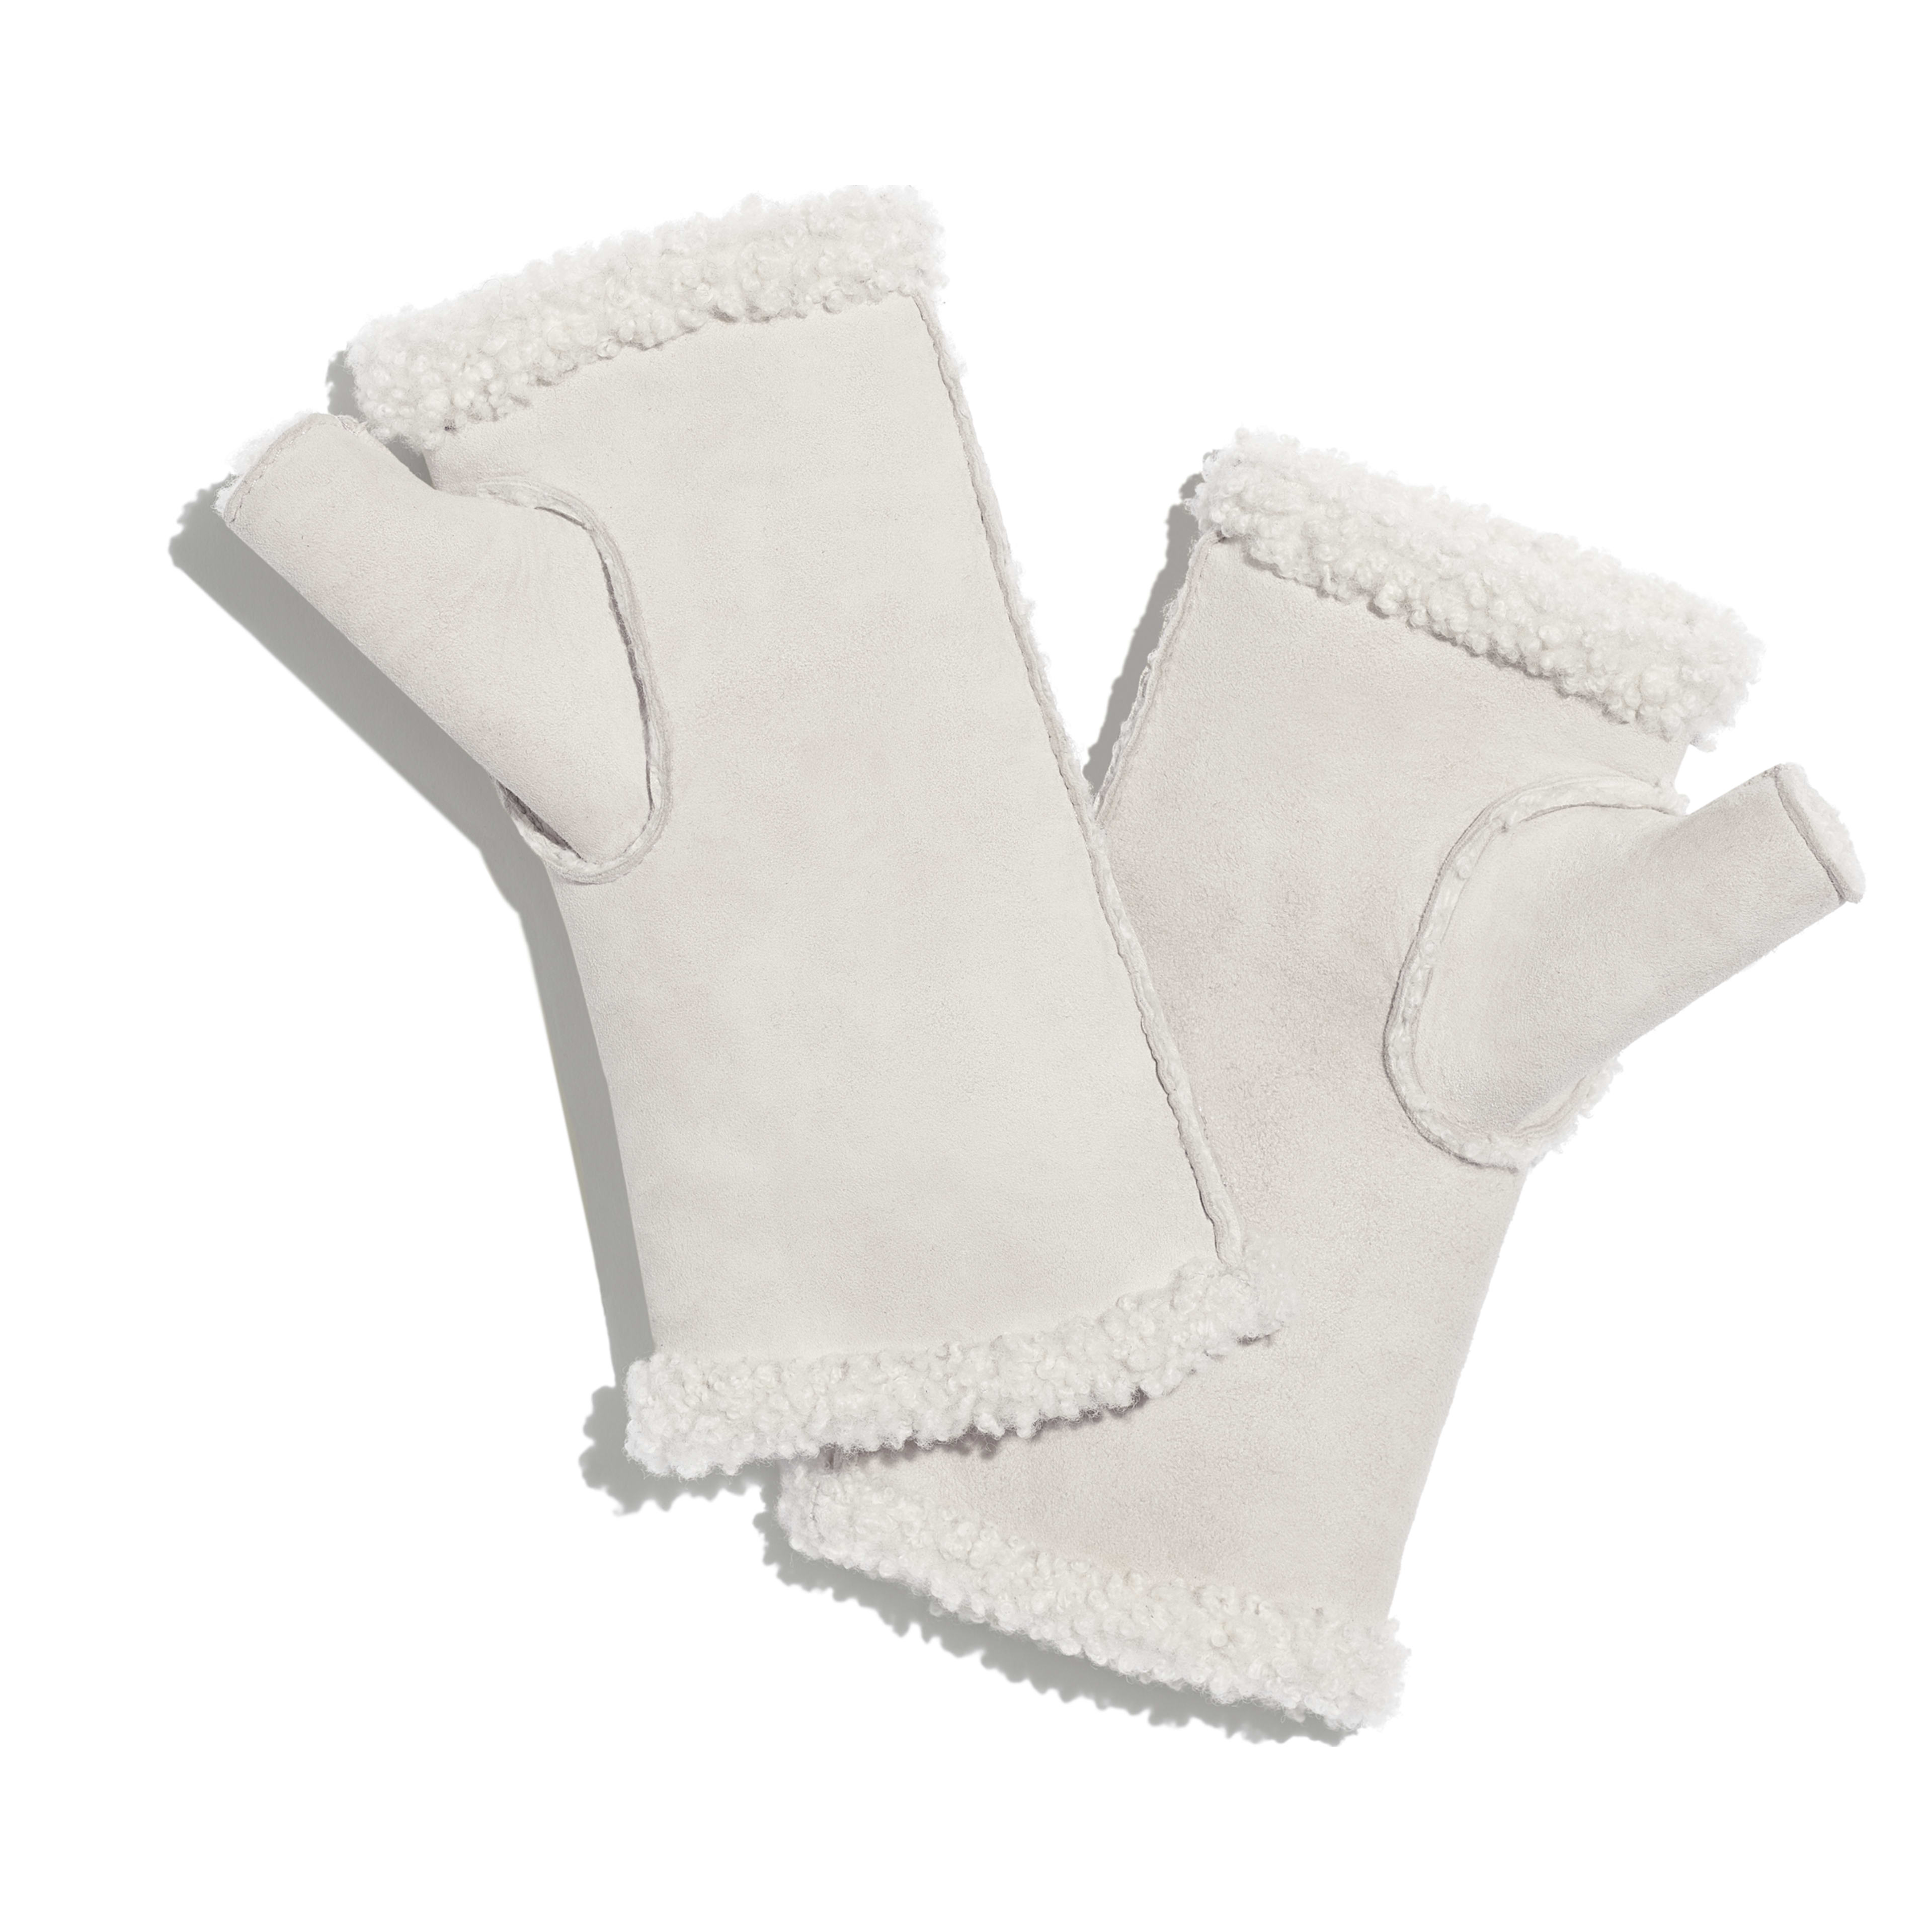 Gloves - Ivory - Shearling & Strass - Alternative view - see full sized version